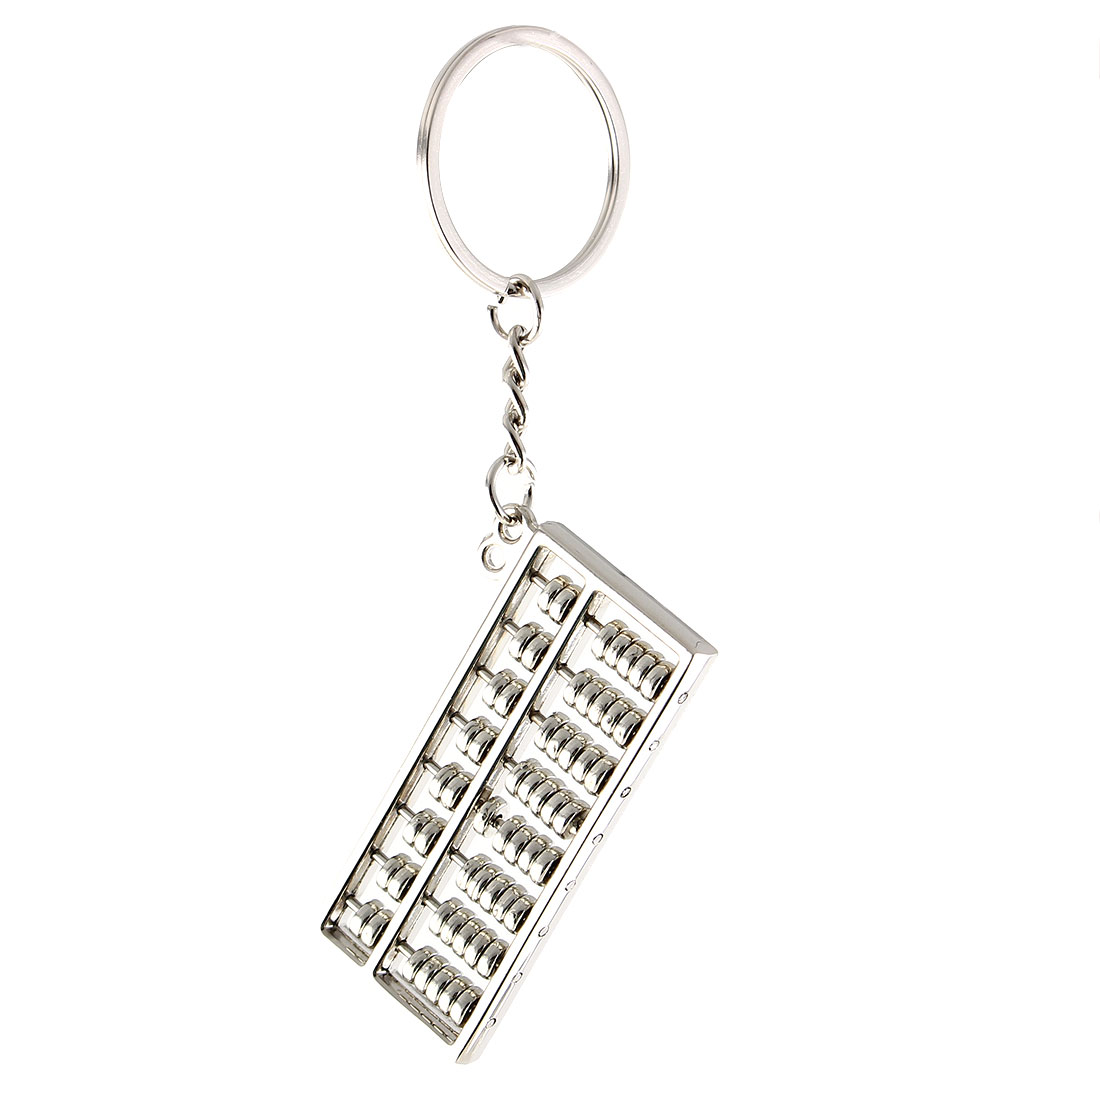 Metal Abacus Mini Roll Pendant Key Chain Ornament Decr Keyring Silvery Tone